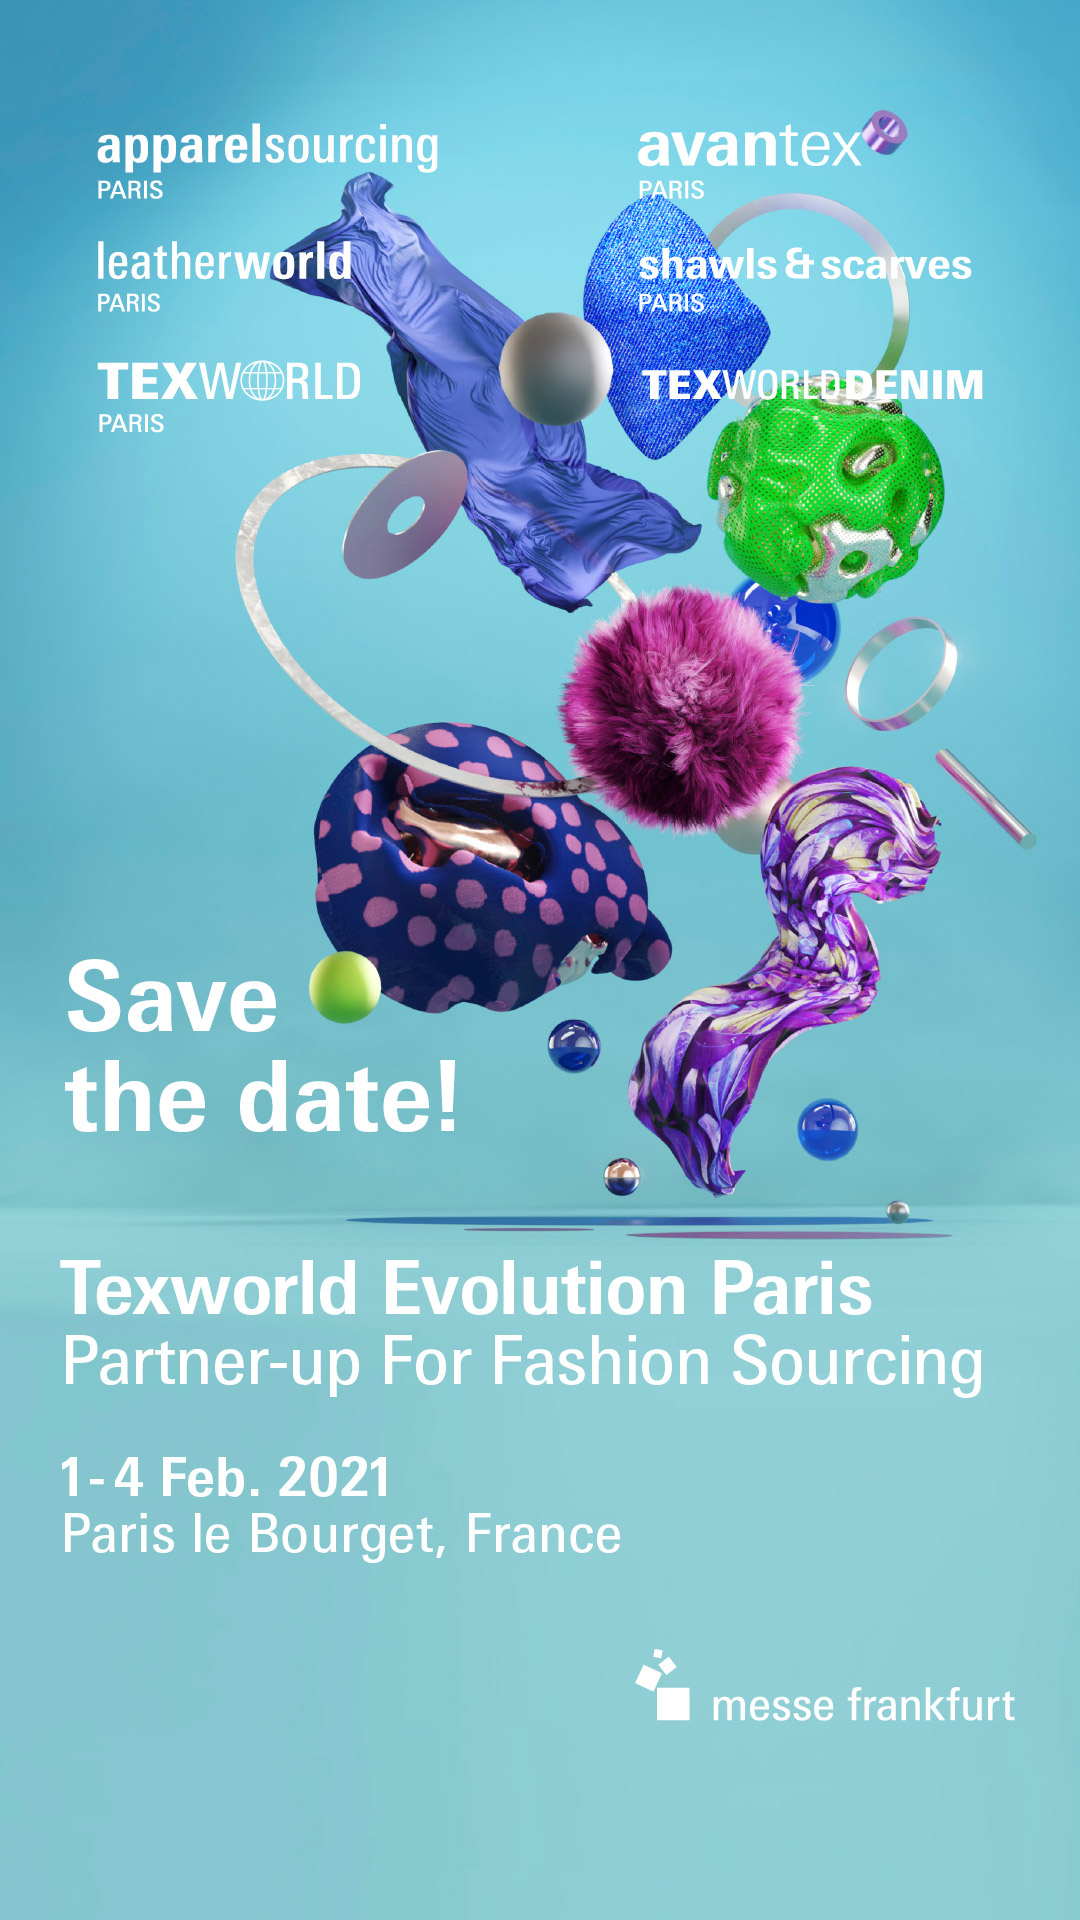 Texworld Evolution Paris